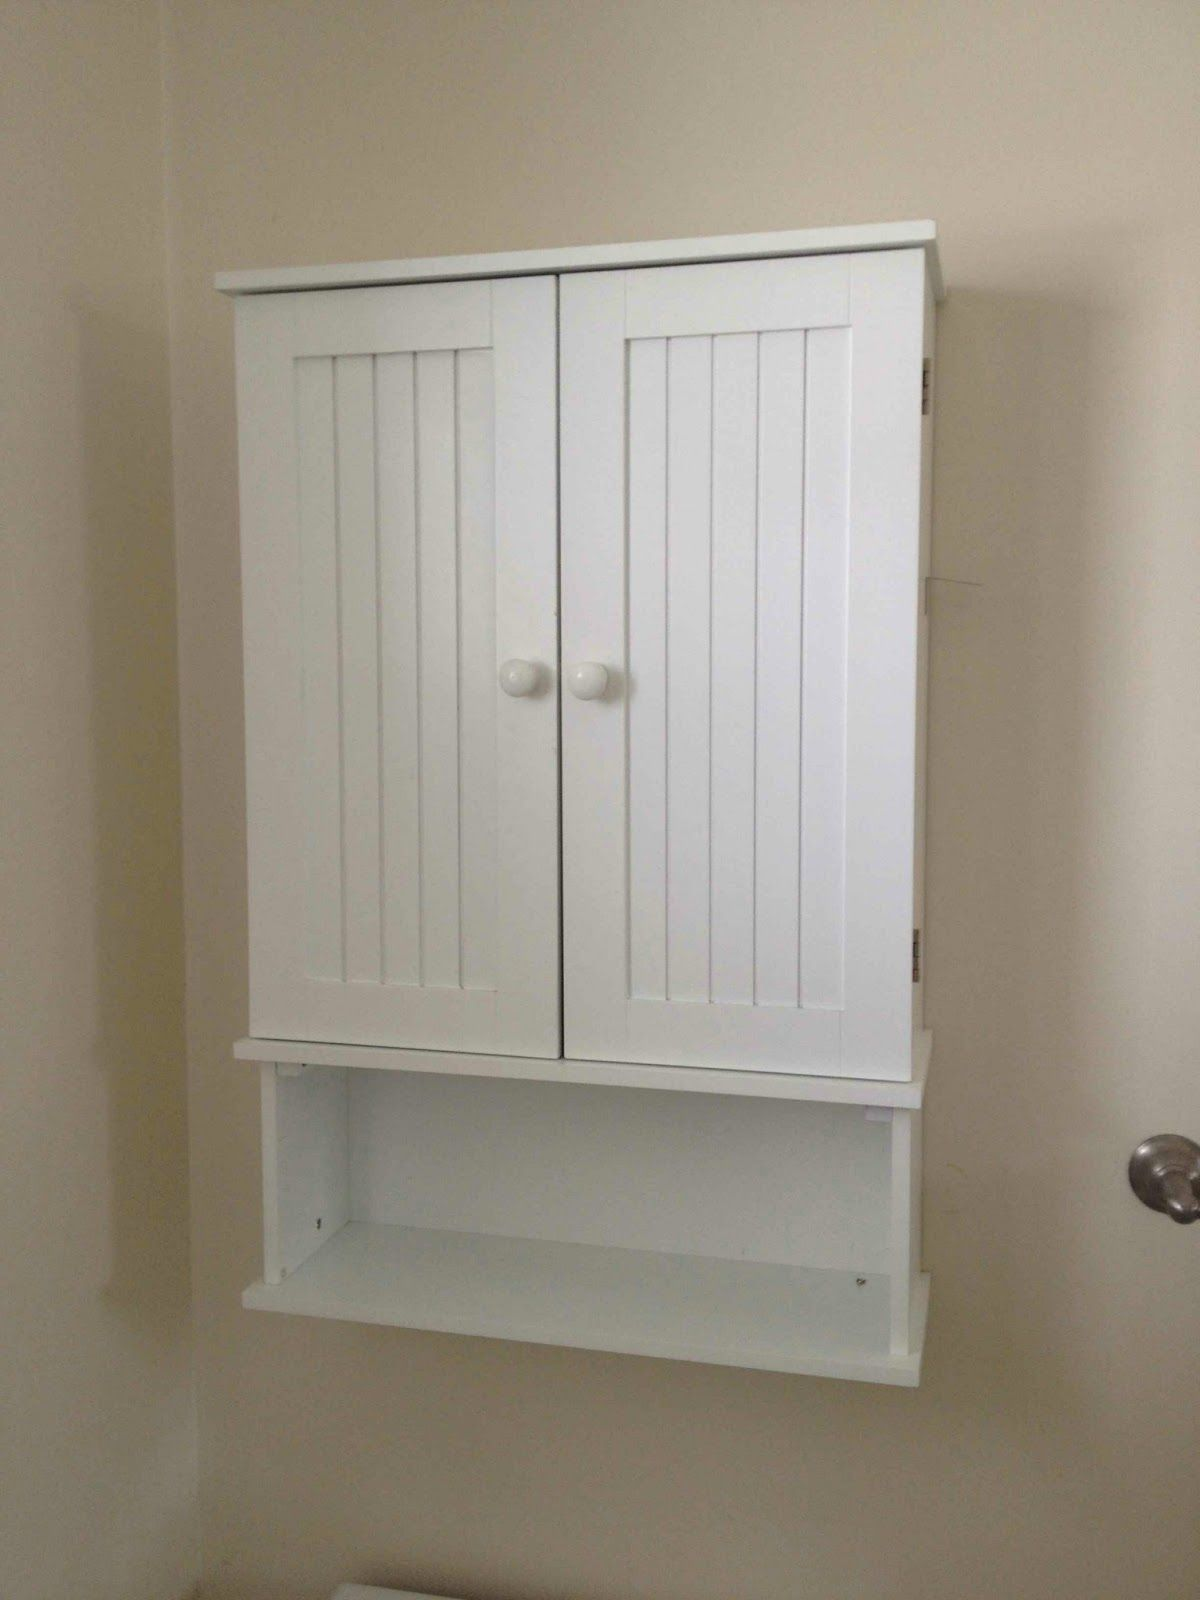 Built in bathroom wall storage - Amazing White Wooden Double Door And Single Shelves Wall Mount Cabinet Over Toilet Storage Attach At